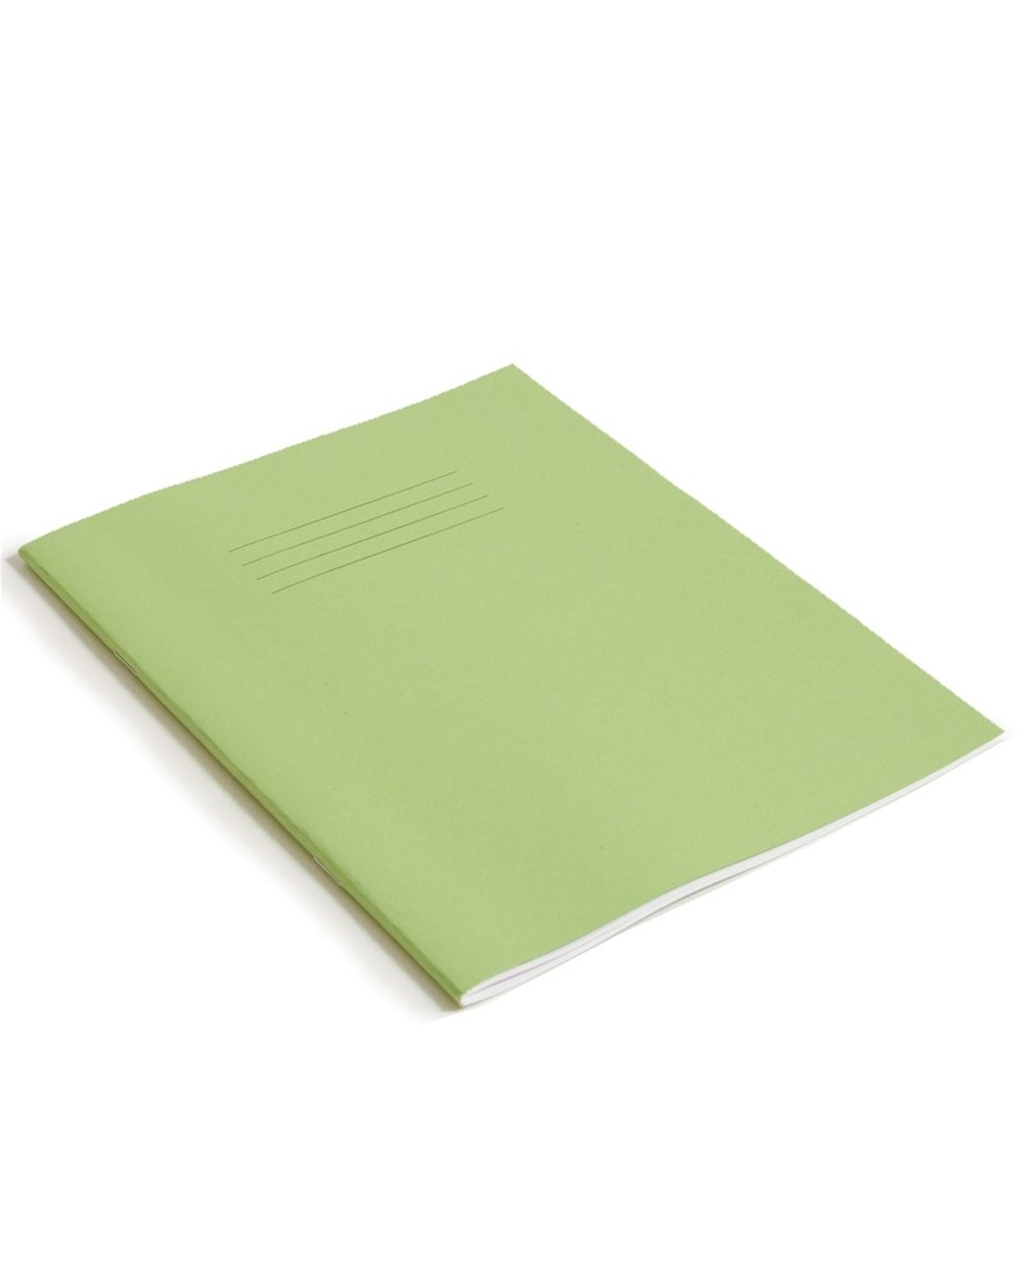 Exercise Book 9 x 7 (229 x 178mm) Light Green Cover 8mm Ruled 48 Pages